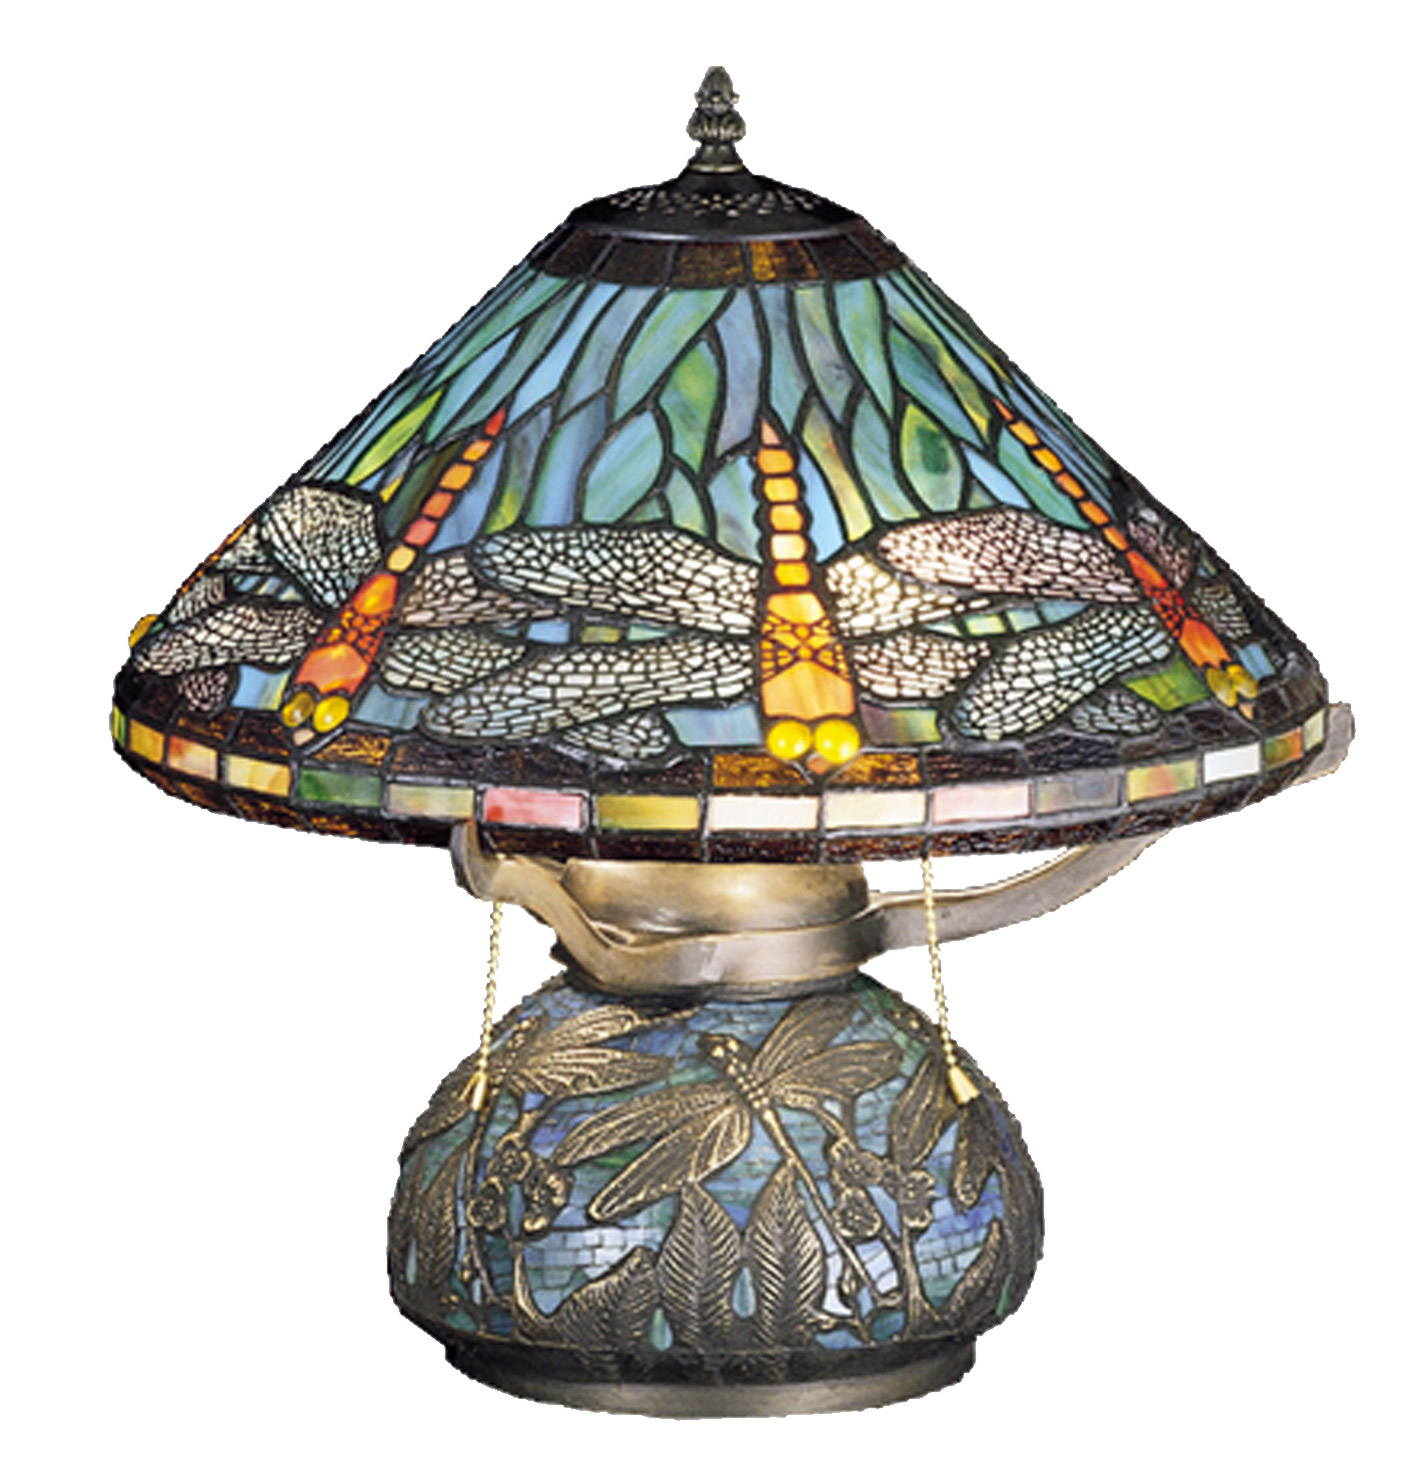 meyda tiffany dragonfly mosaic accent lamp table lamps large acrylic coffee modern blue vintage marble small chairside with drawer wide nightstand drawers ikea high top simon lee